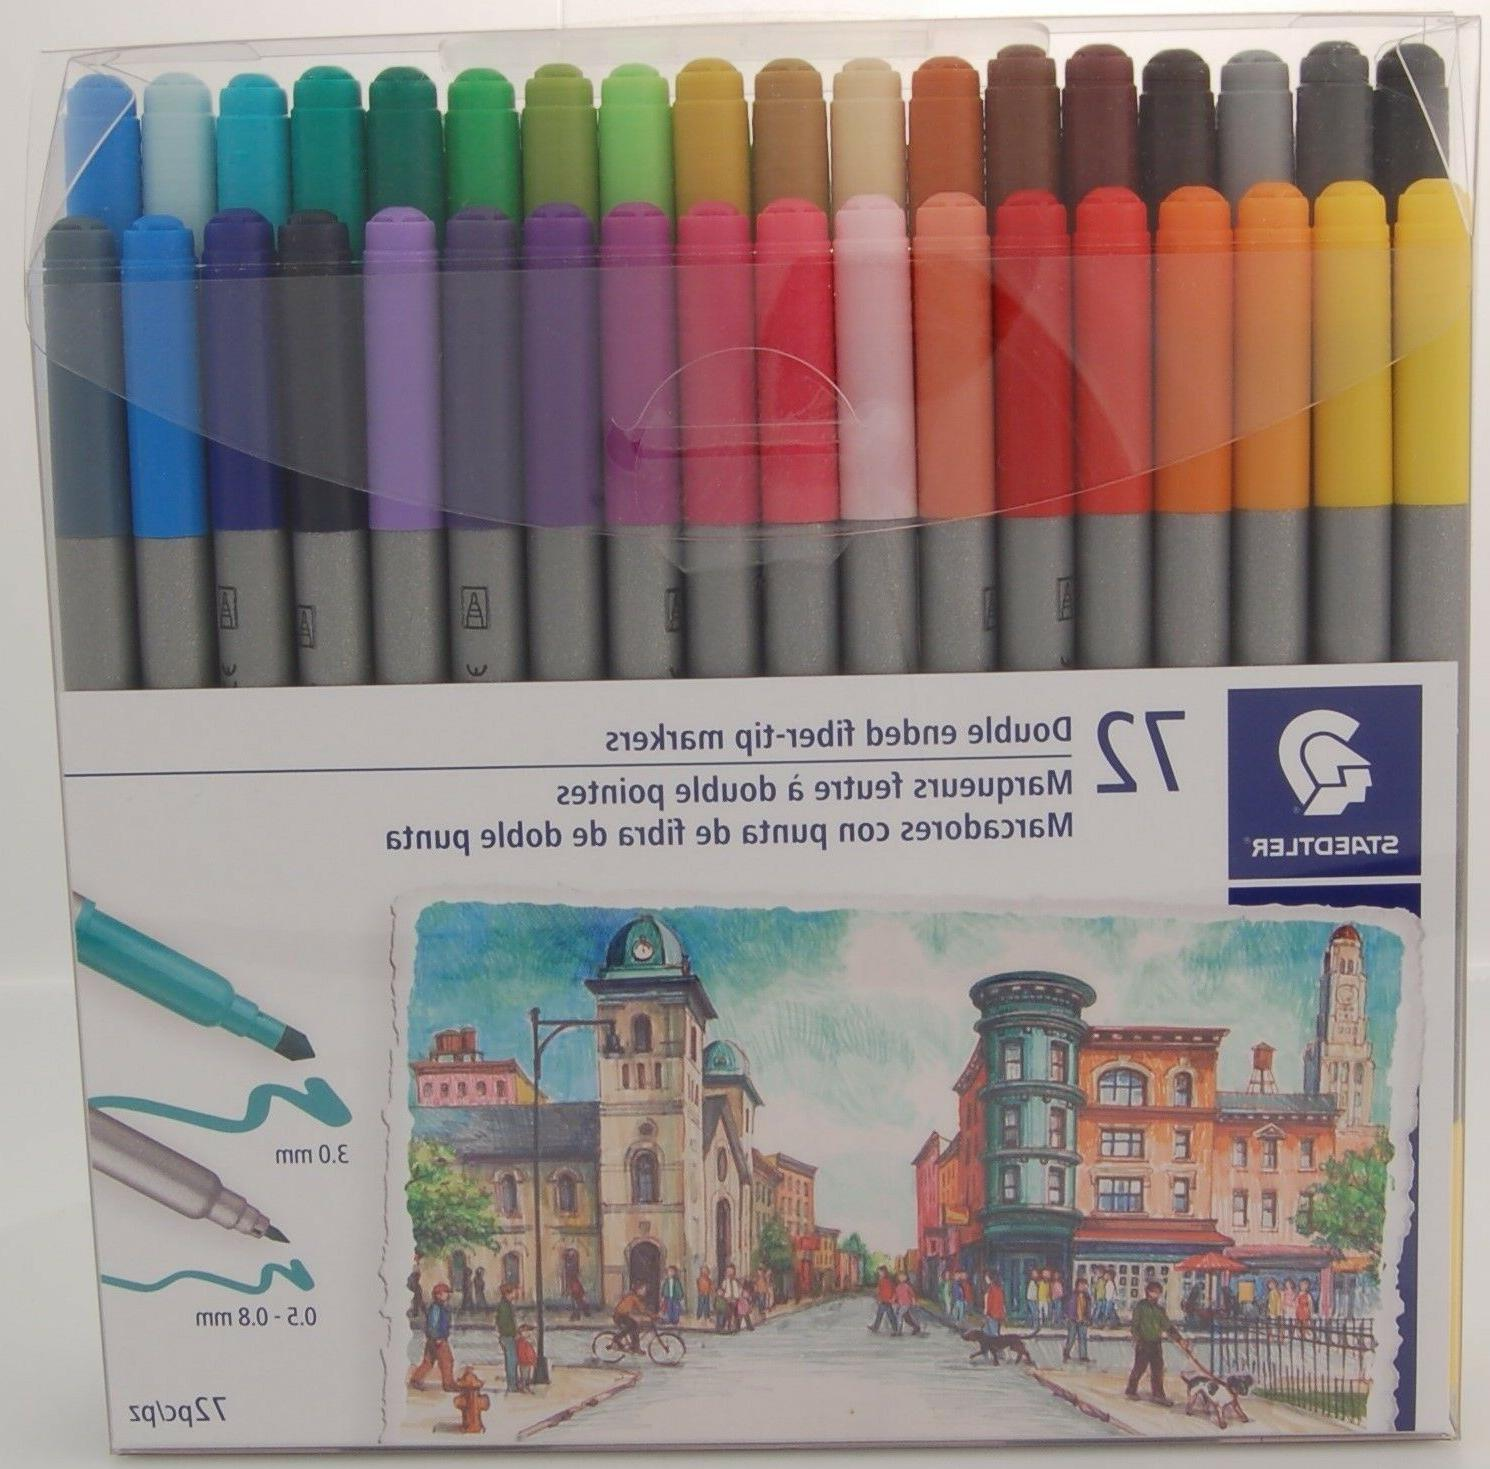 Staedtler Double Ended Fiber-Tip Markers 72 Colors Duo-Color